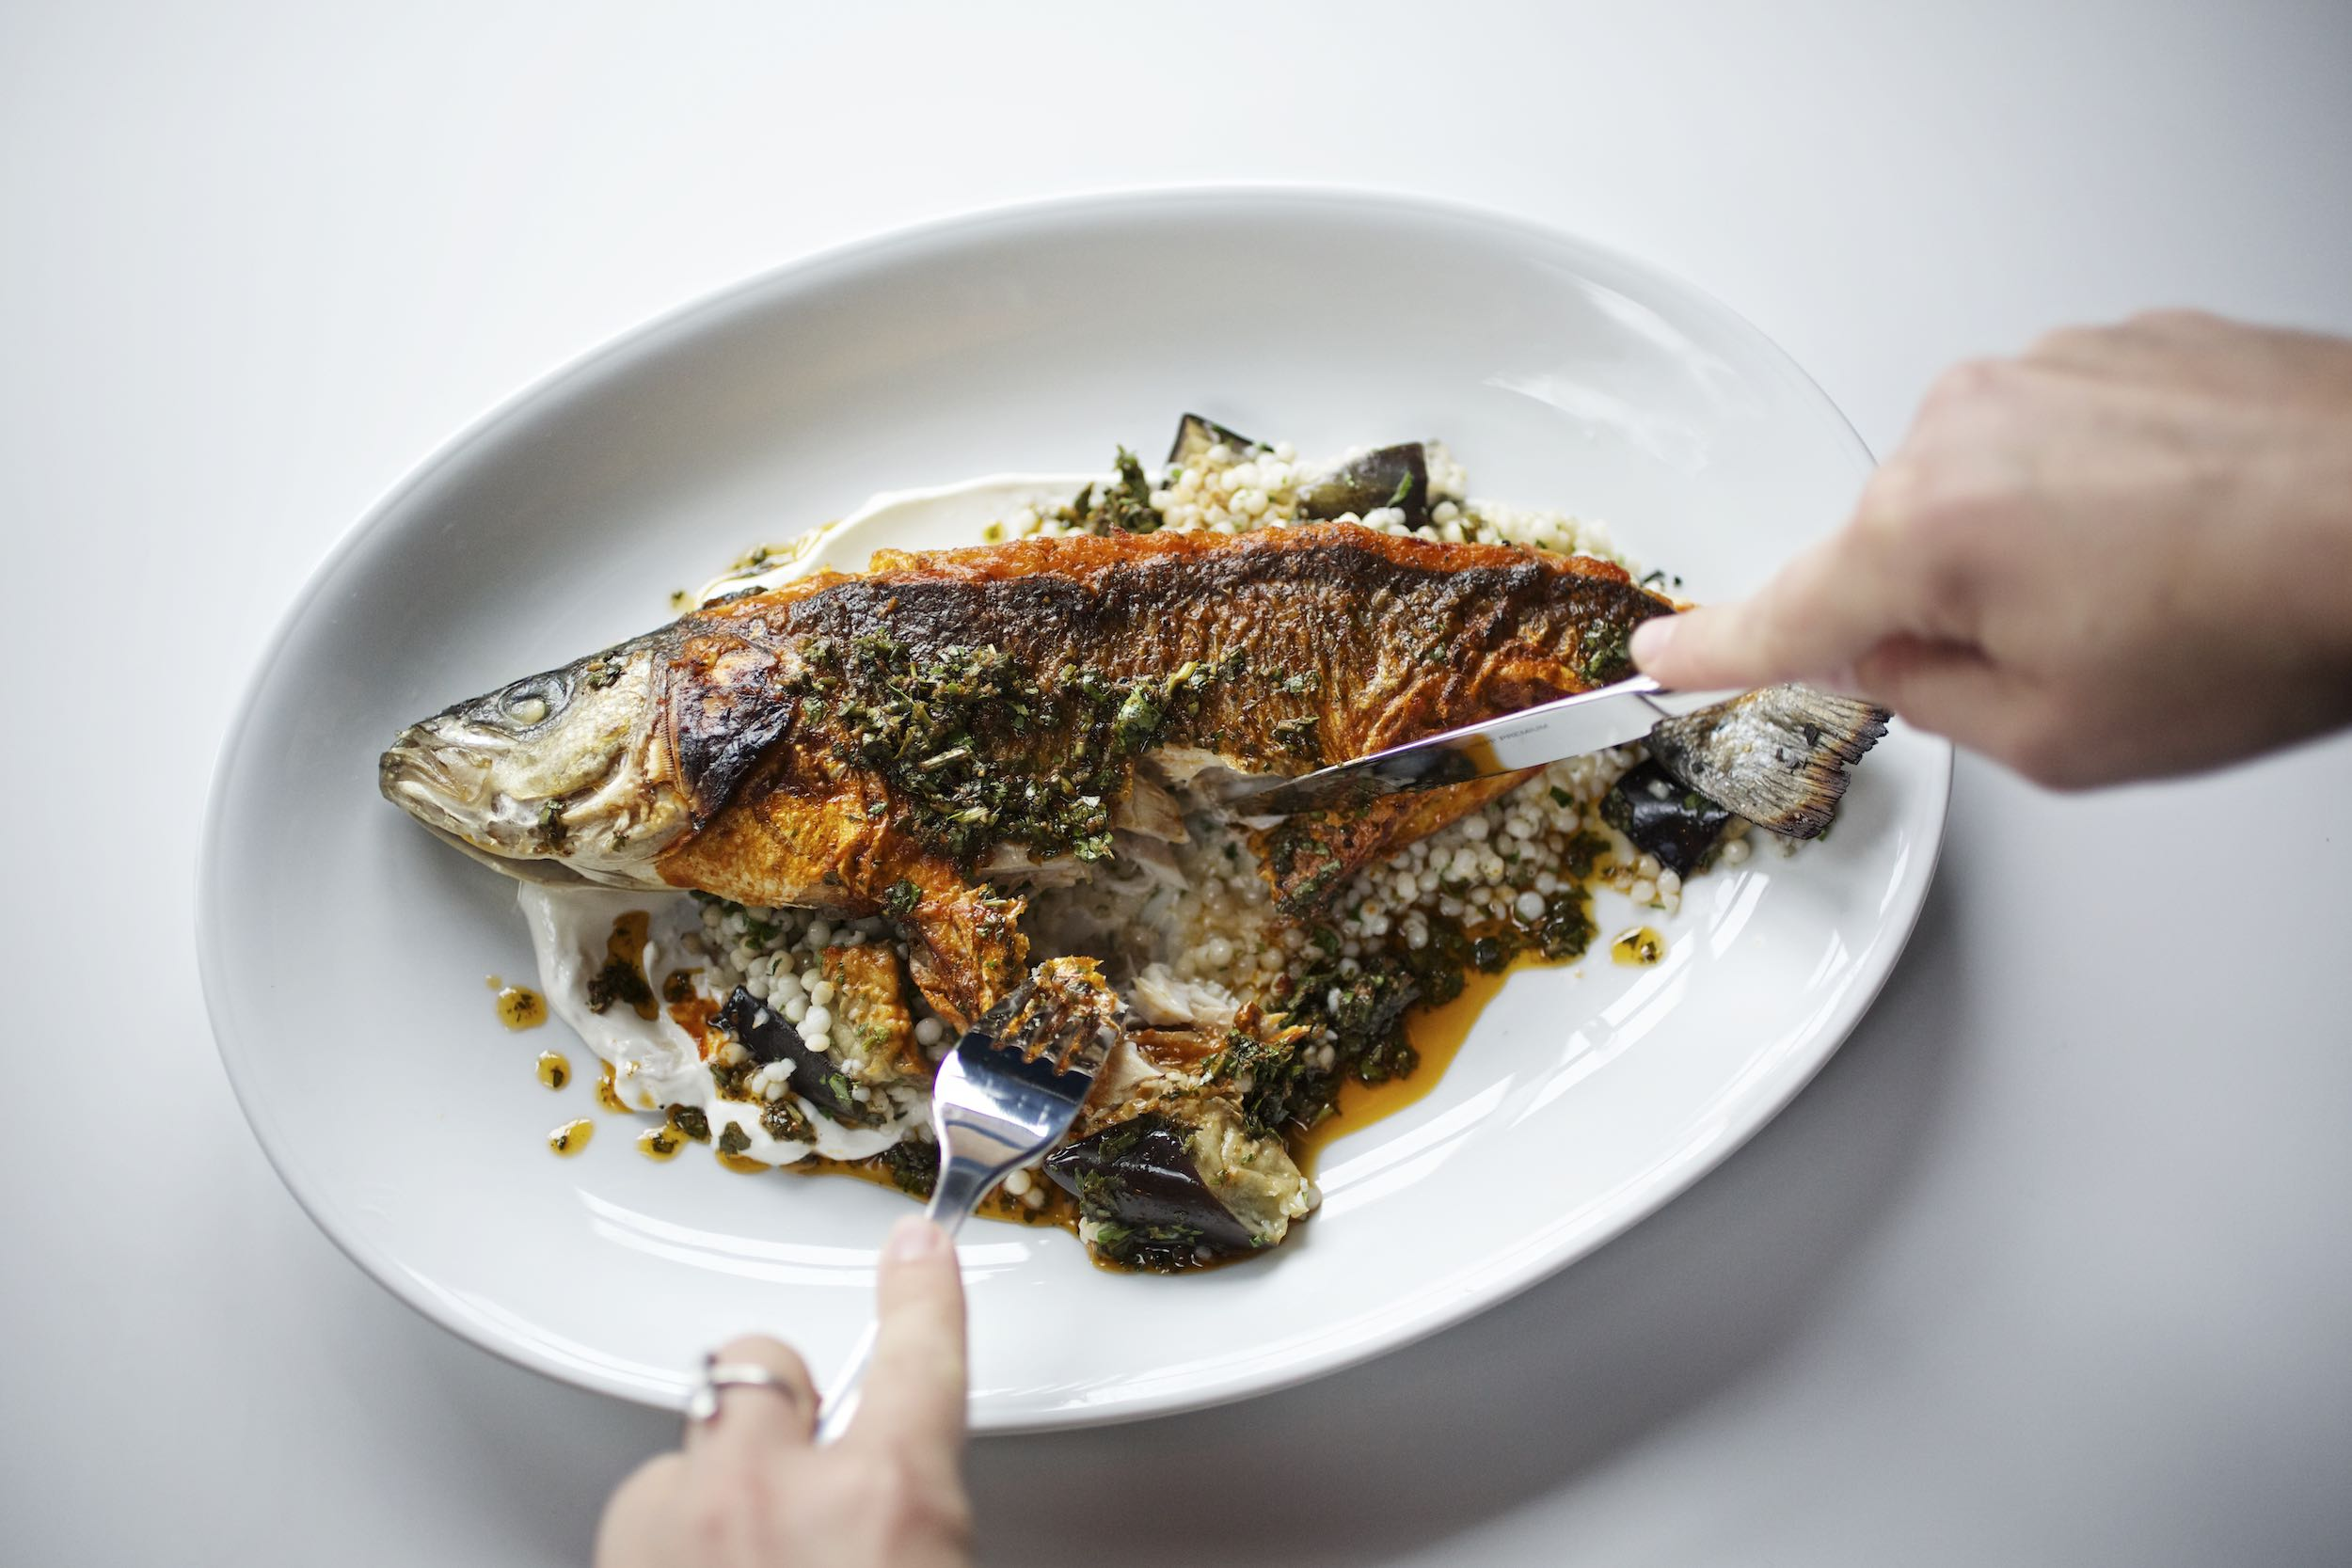 Jody Horton Photography - Whole cooked fish and couscous sitting on a white plate.